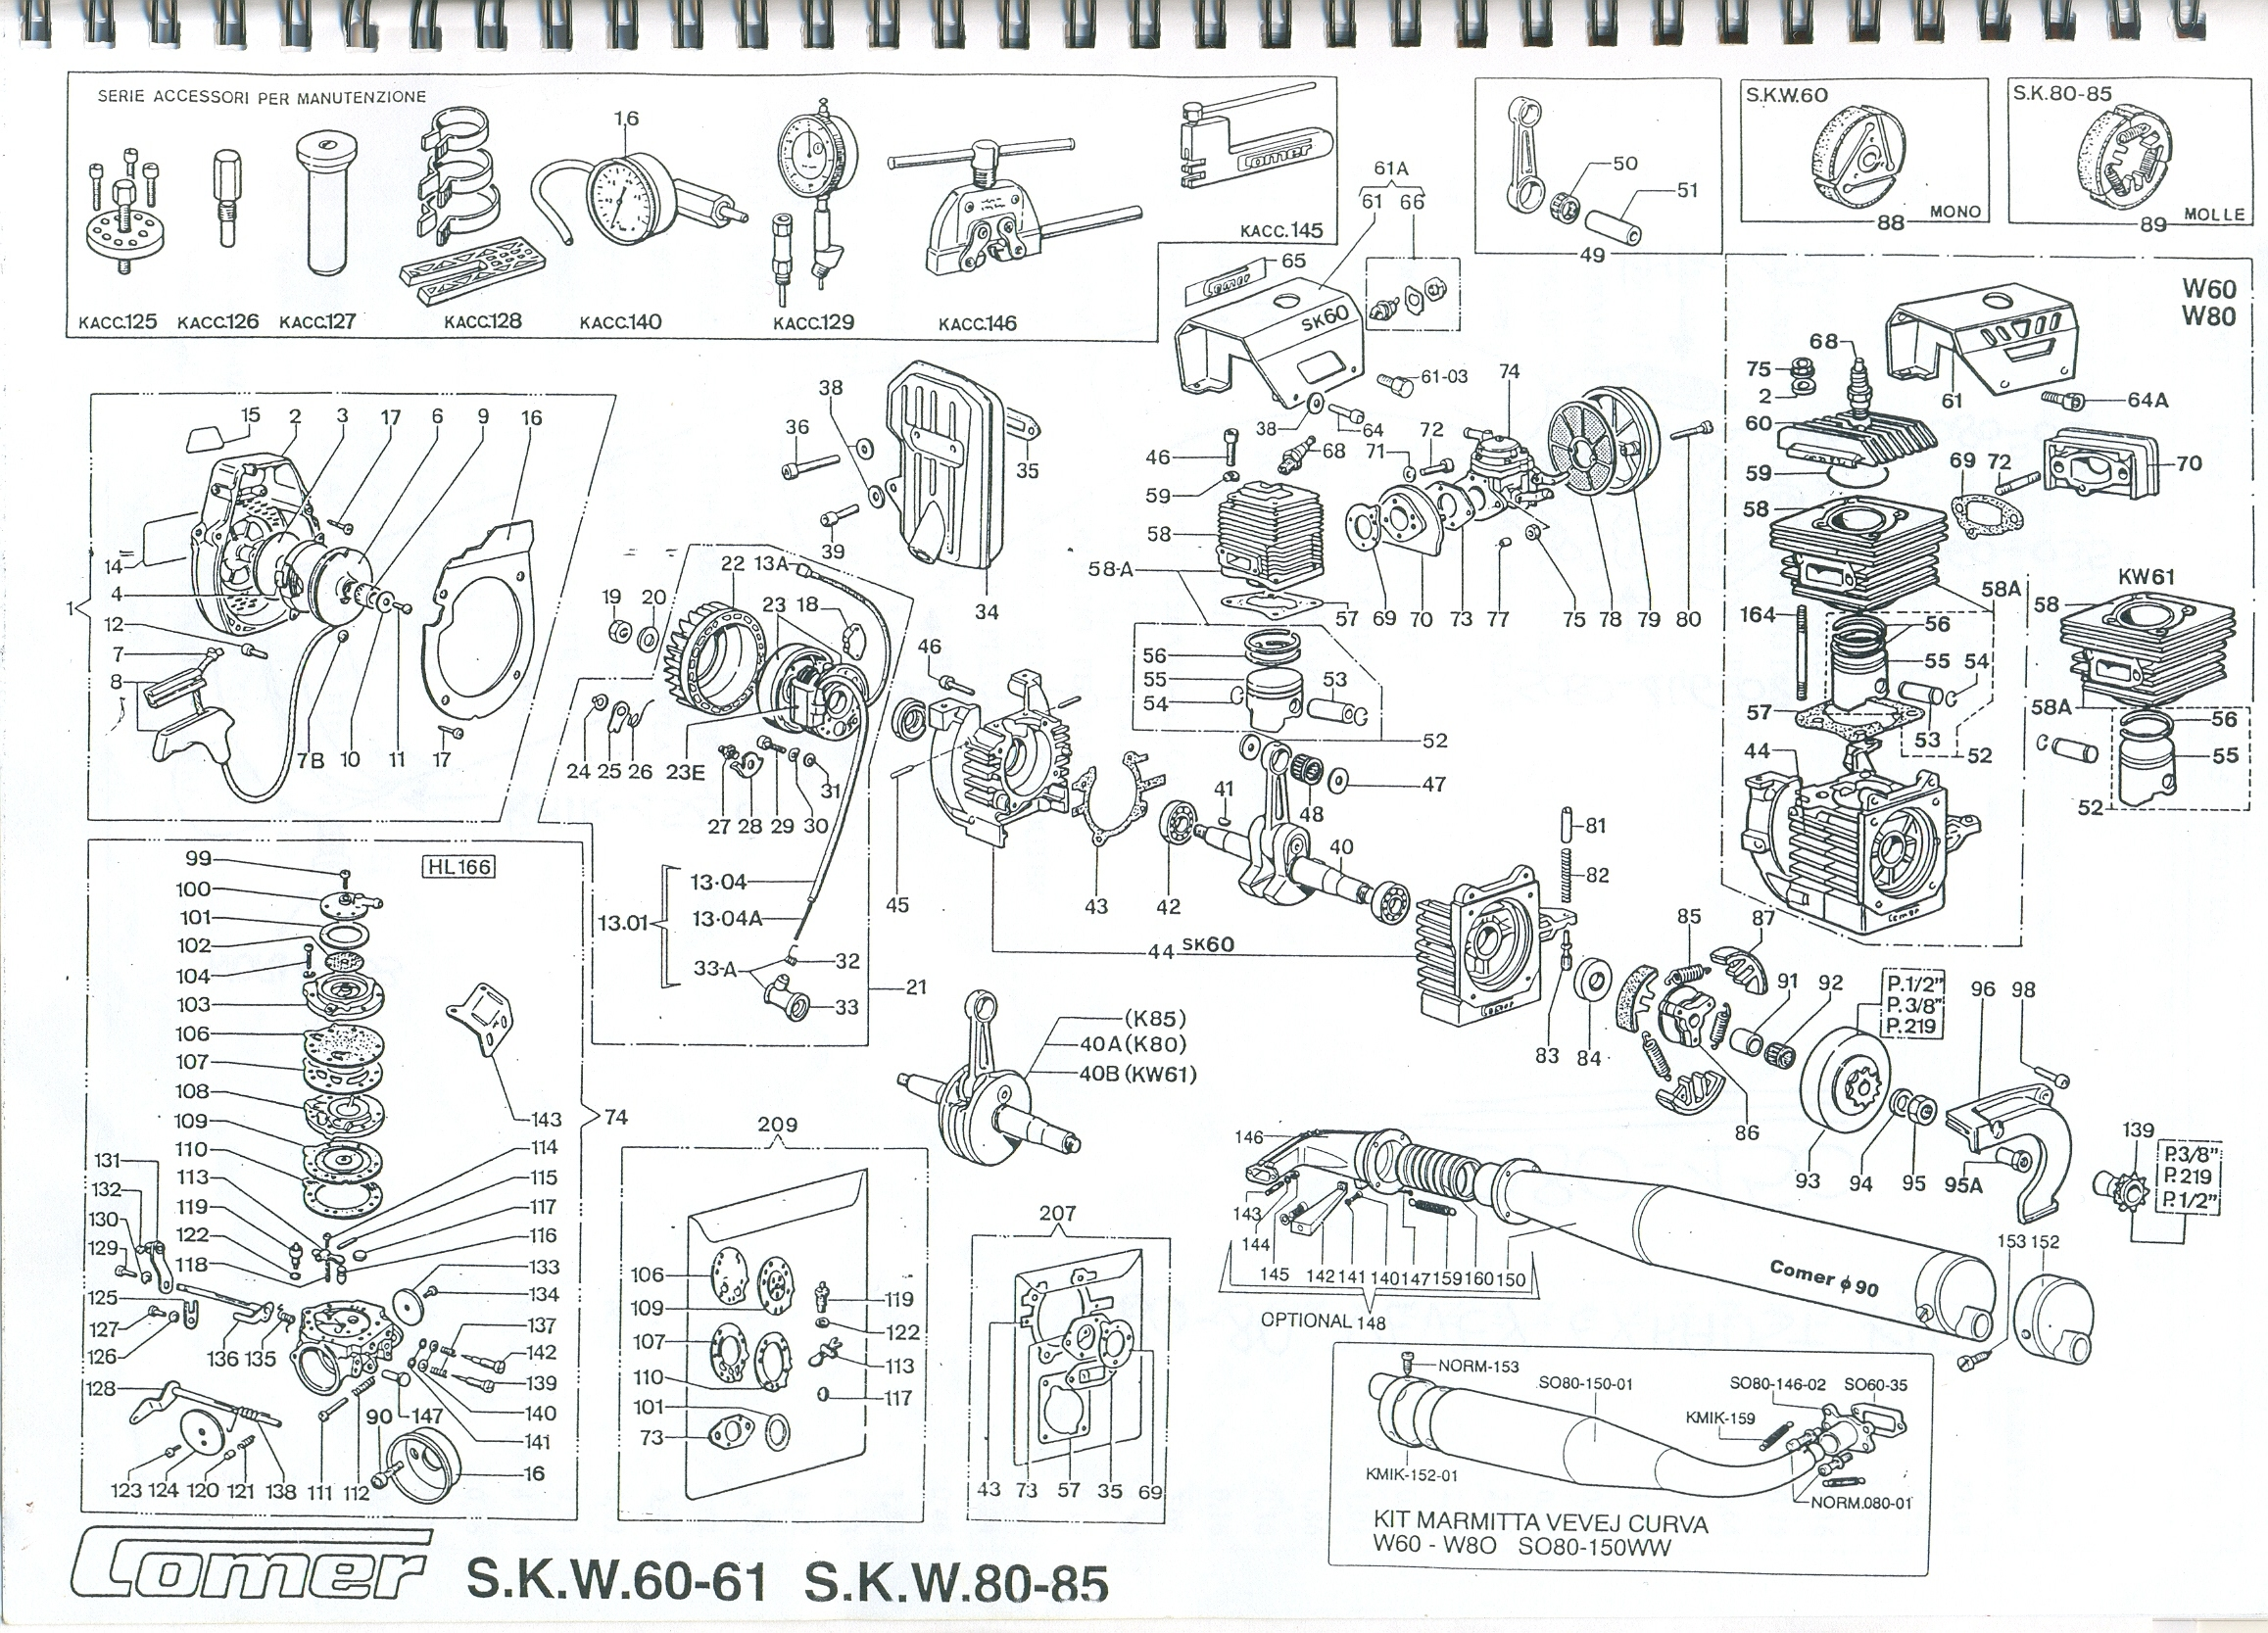 Roketa Scooters 50cc 2 Cycle Wiring Diagram together with Parts Of A Baby as well Motor Trike Wiring Diagram also Taotao 50 Wiring Diagram together with Electric Bikes Canada. on wiring diagram for schwinn scooter